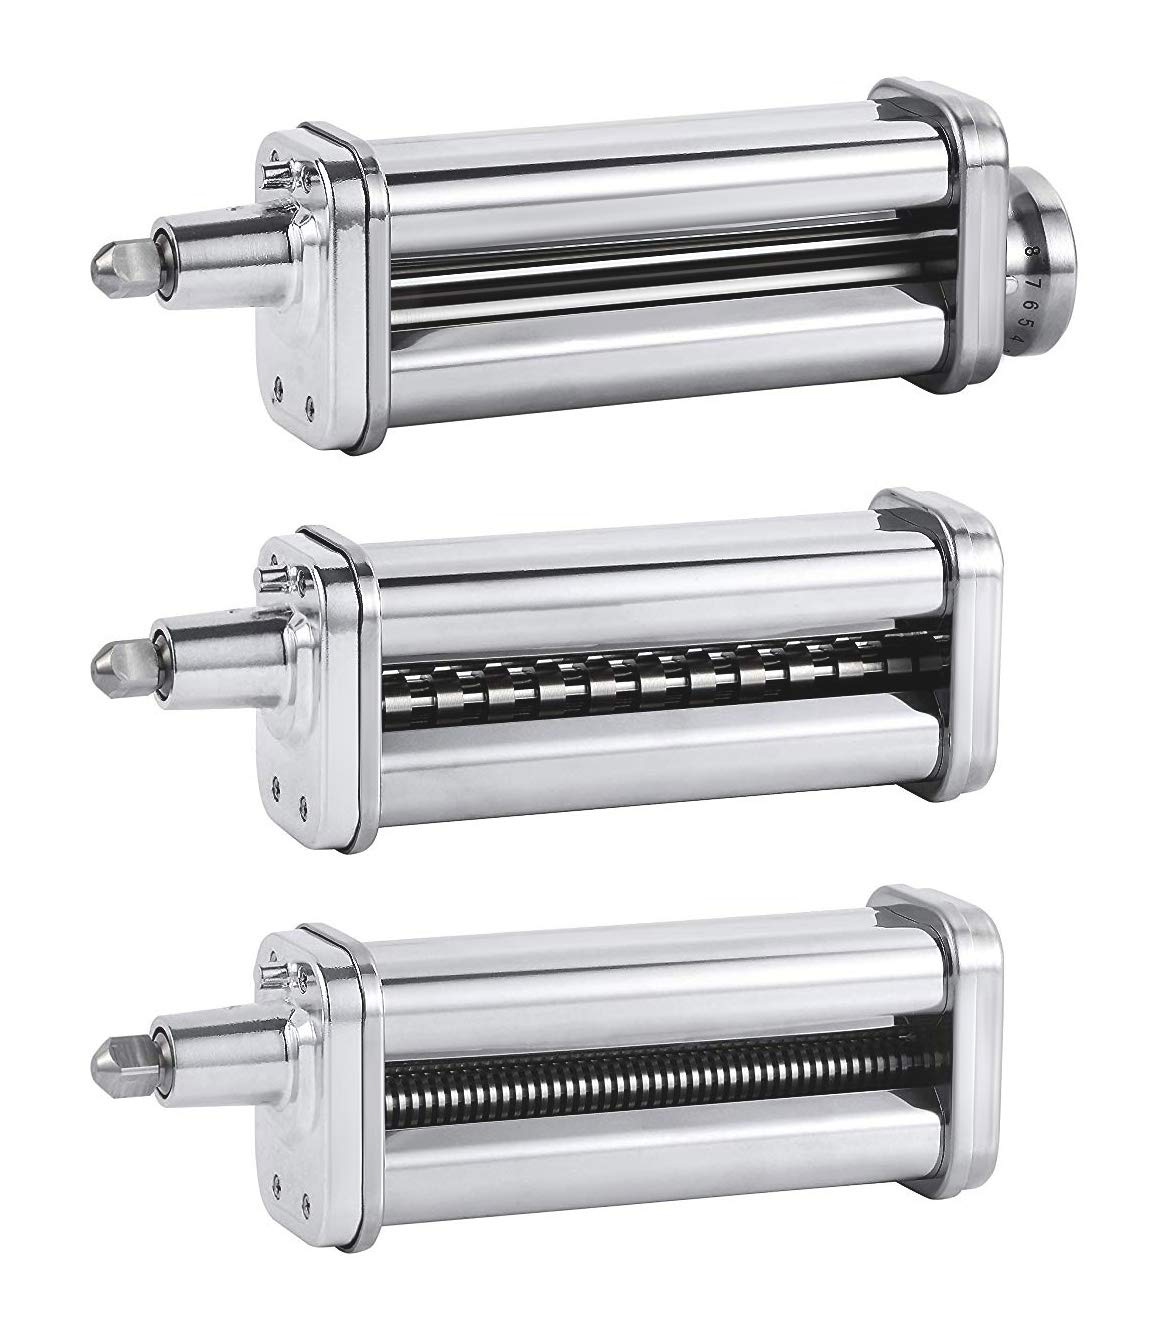 Pasta Roller & Cutters Attachments Set for KitchenAid Stand Mixers, included Pasta Sheet Roller,Spaghetti & Fettuccine Cutter Maker Accessories